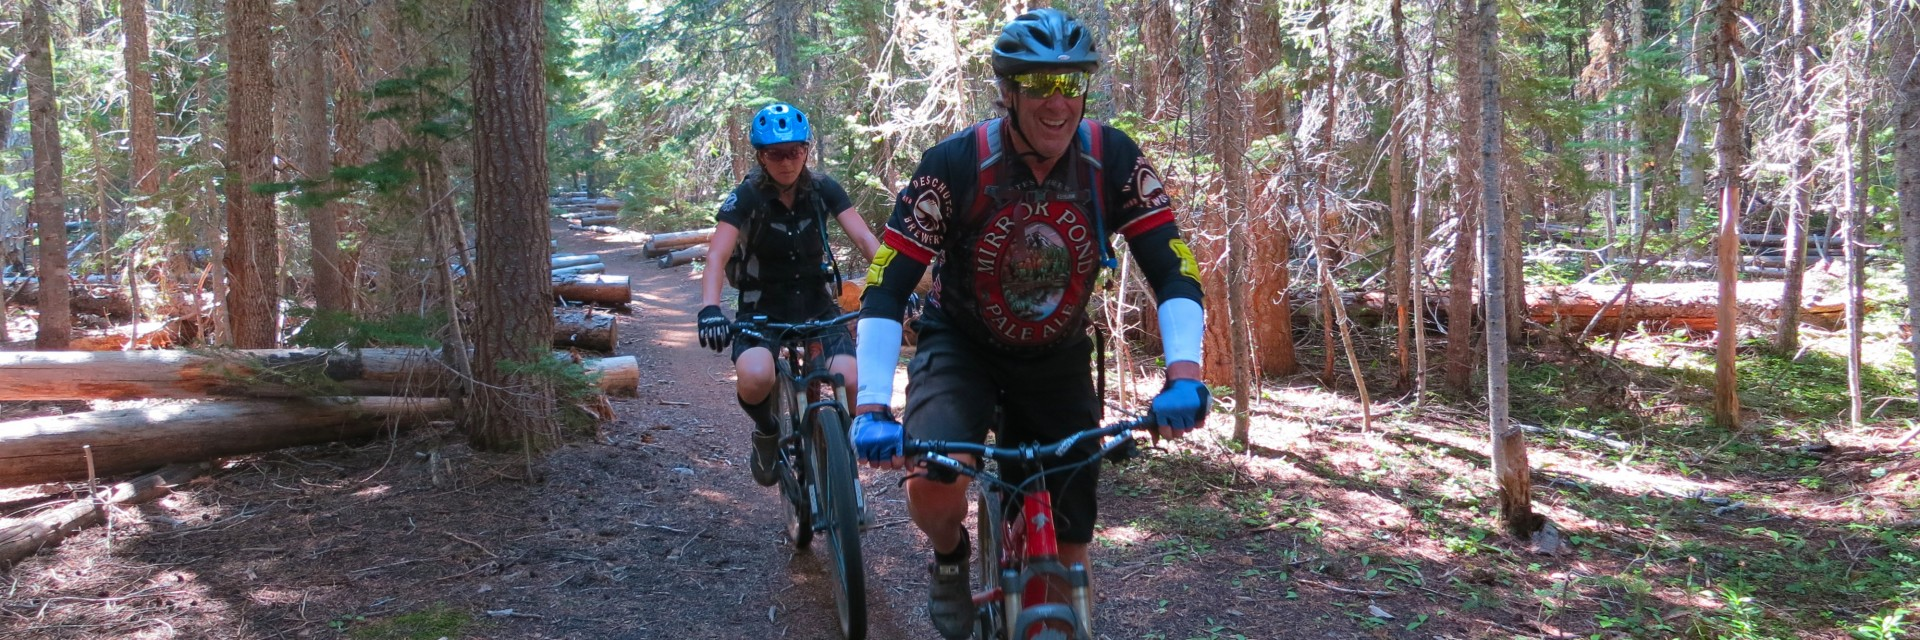 Mountain bikers negotiate the many log cuts encountered along the Oregon Cascade Singletrack guided tour near Bend OR